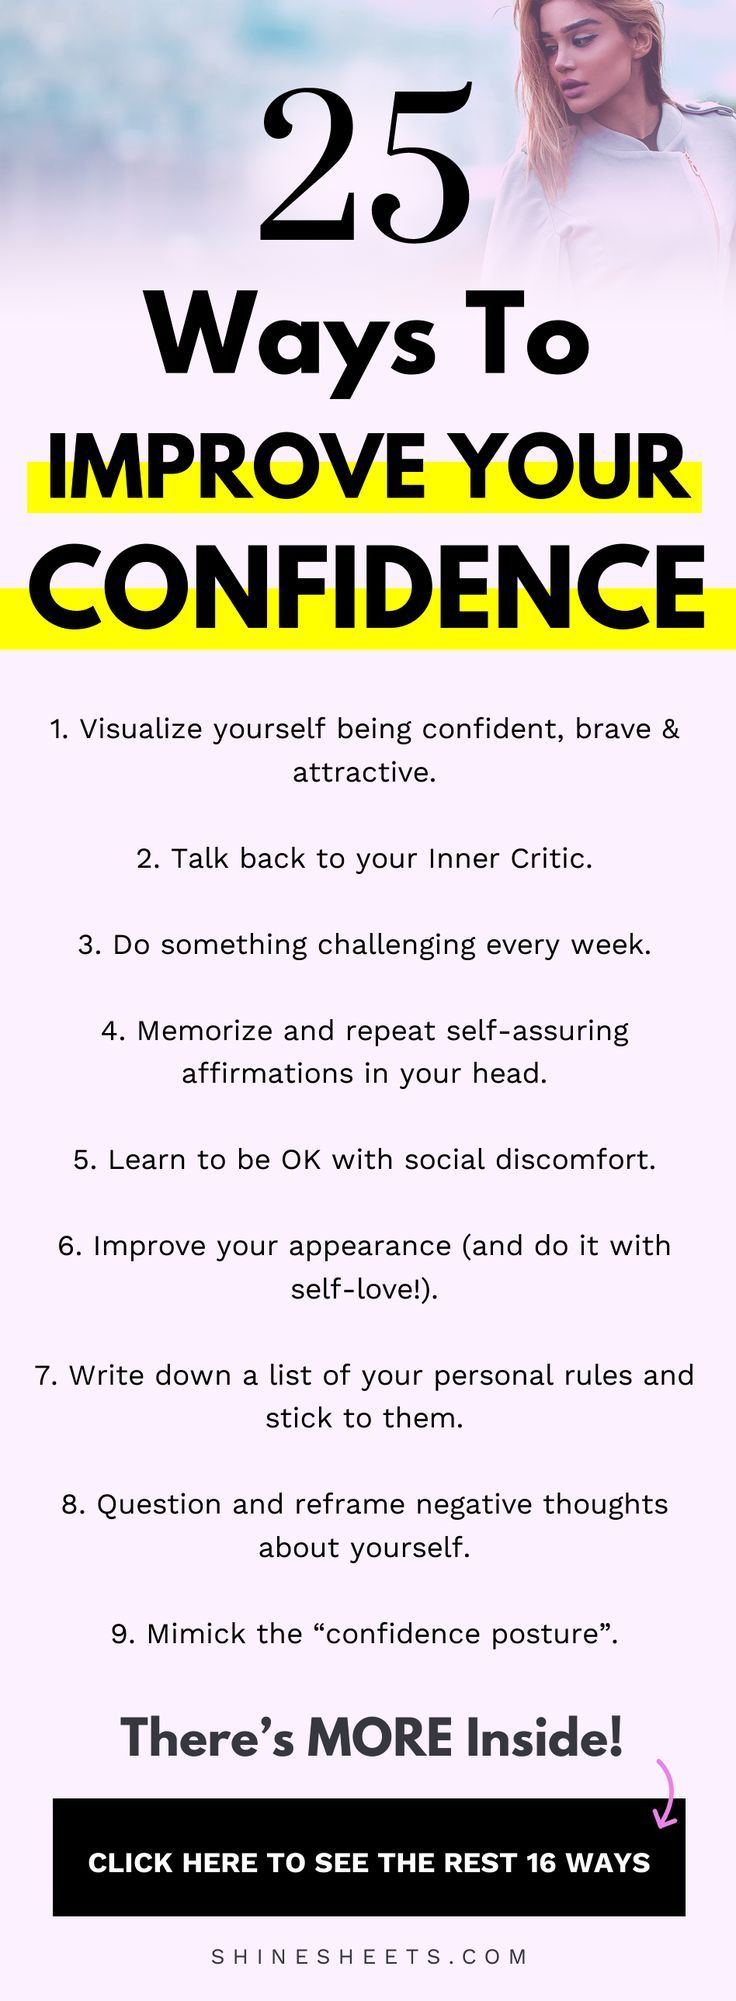 How to be confident when life, work and people just seem to be taking all your confidence away? Start with understanding that confidence CAN be improved - then follow these 25 easy mindset tricks and techniques to become drastically more confident day by day! | ShineSheets.com | How to be more confident, improve your confidence, confidence building, self confidence, how to be confident in yourself, self esteem tips #confidence #confident #selfesteem #socialanxiety #personaldevelopment #selfhelp